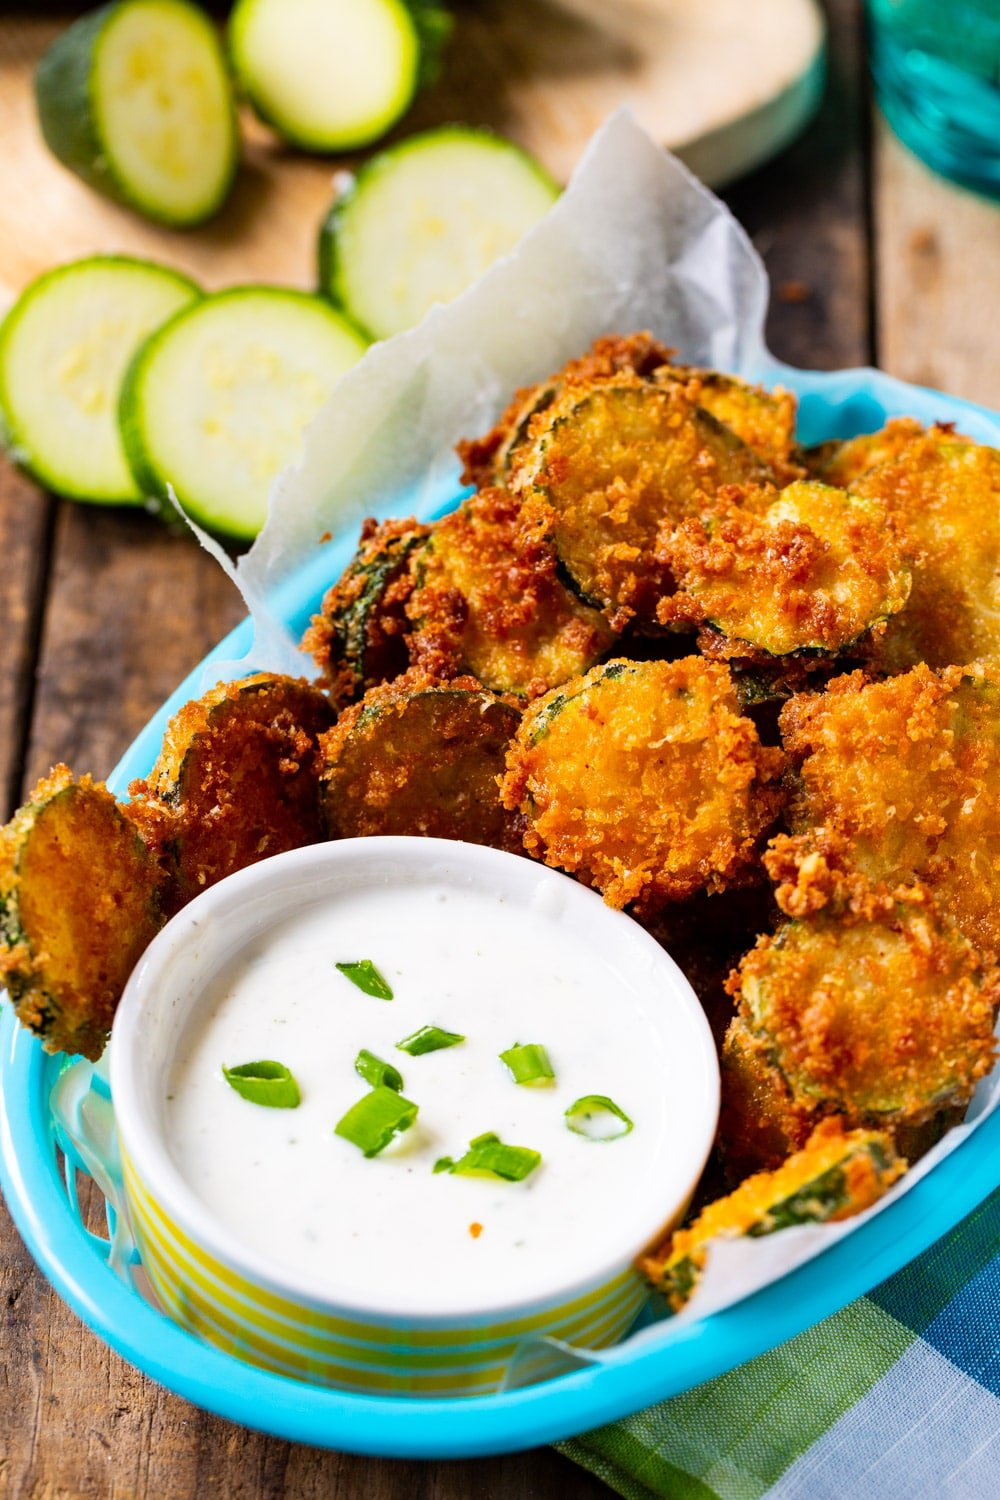 Fried Zucchini Chips in a basket with bowl of ranch dressing.